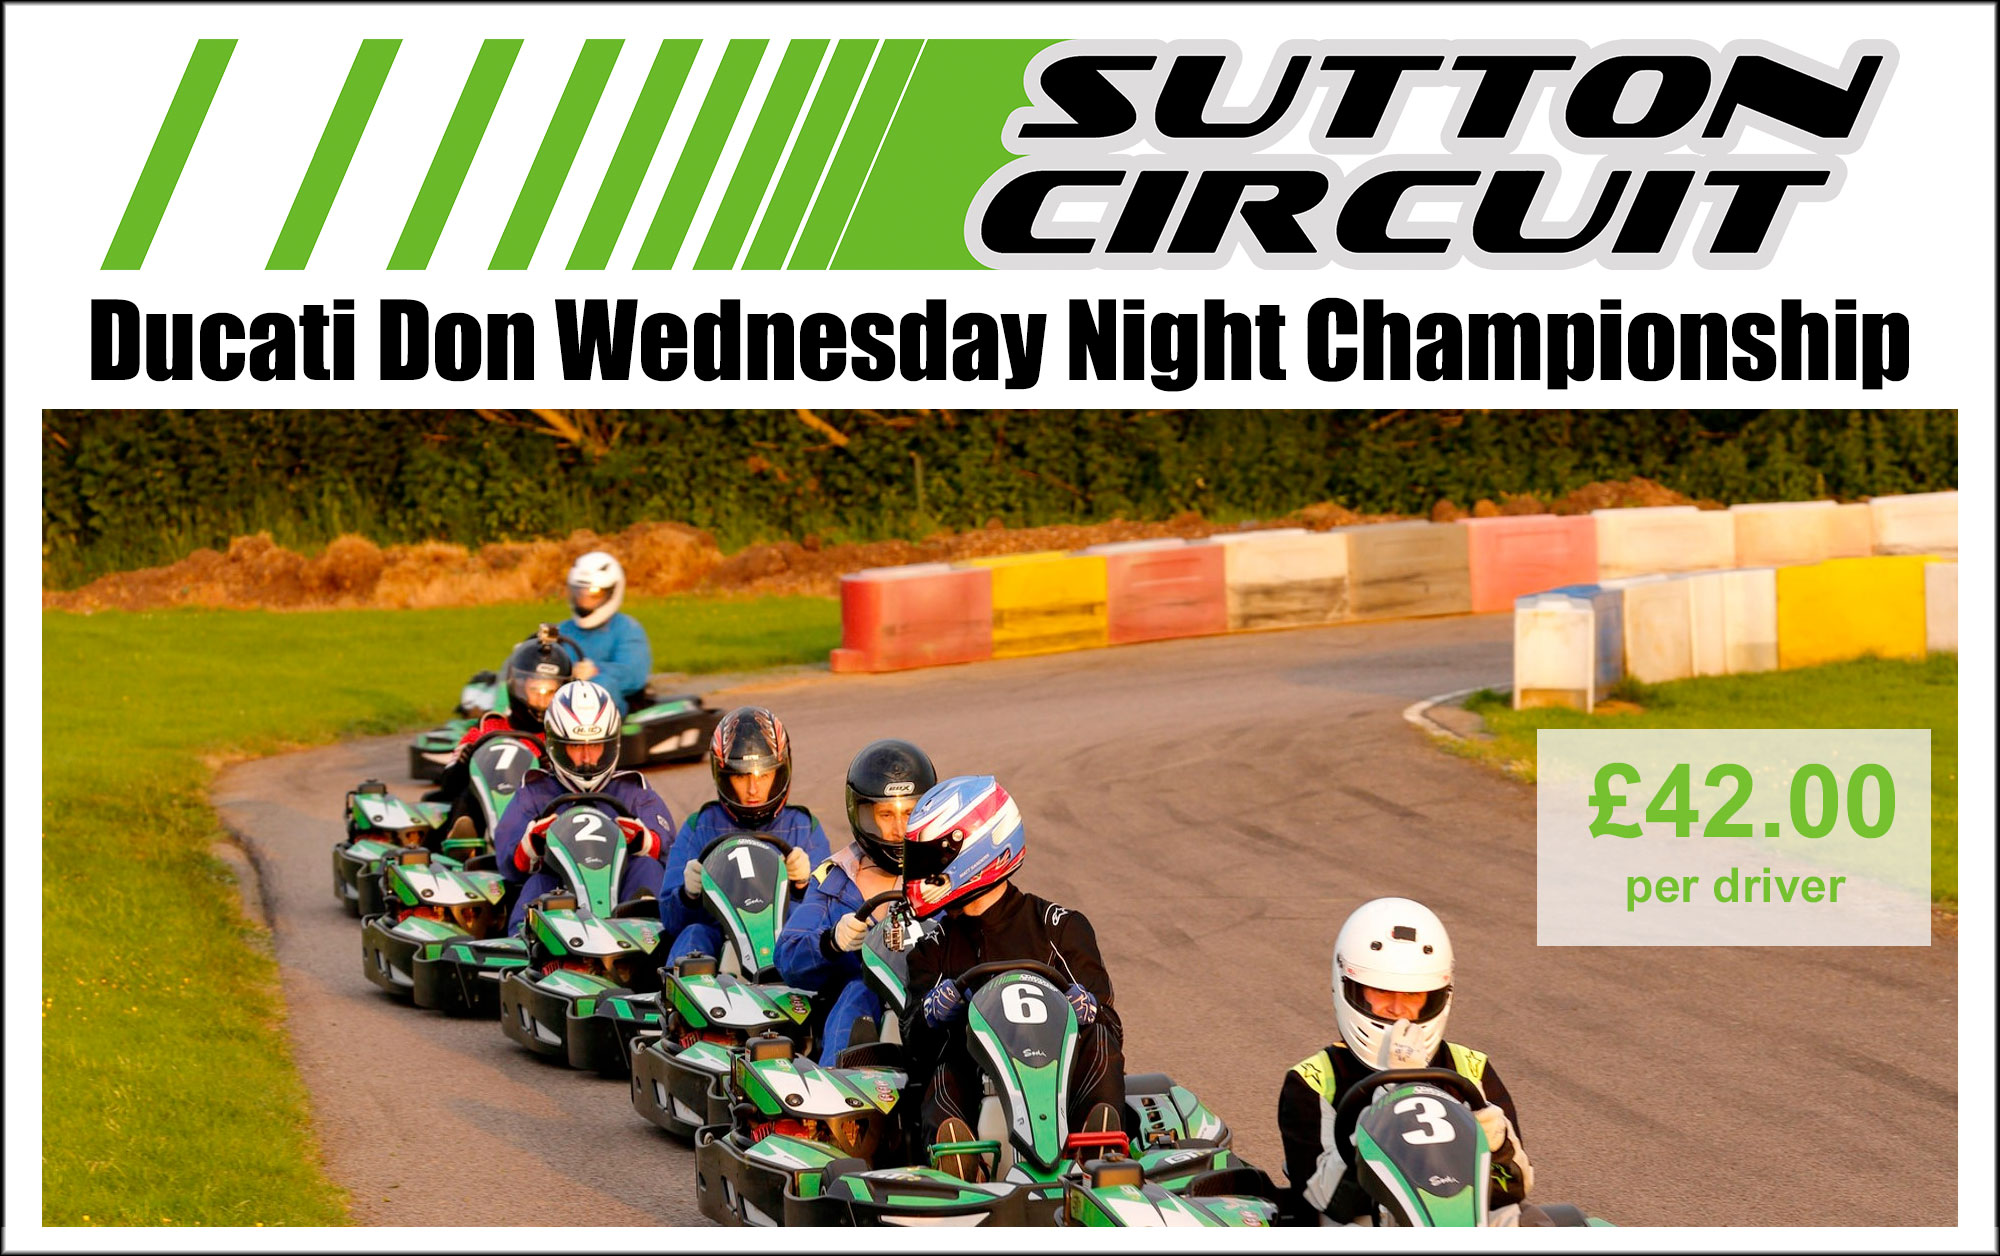 Ducati Don Wednesday Night Championships 2019